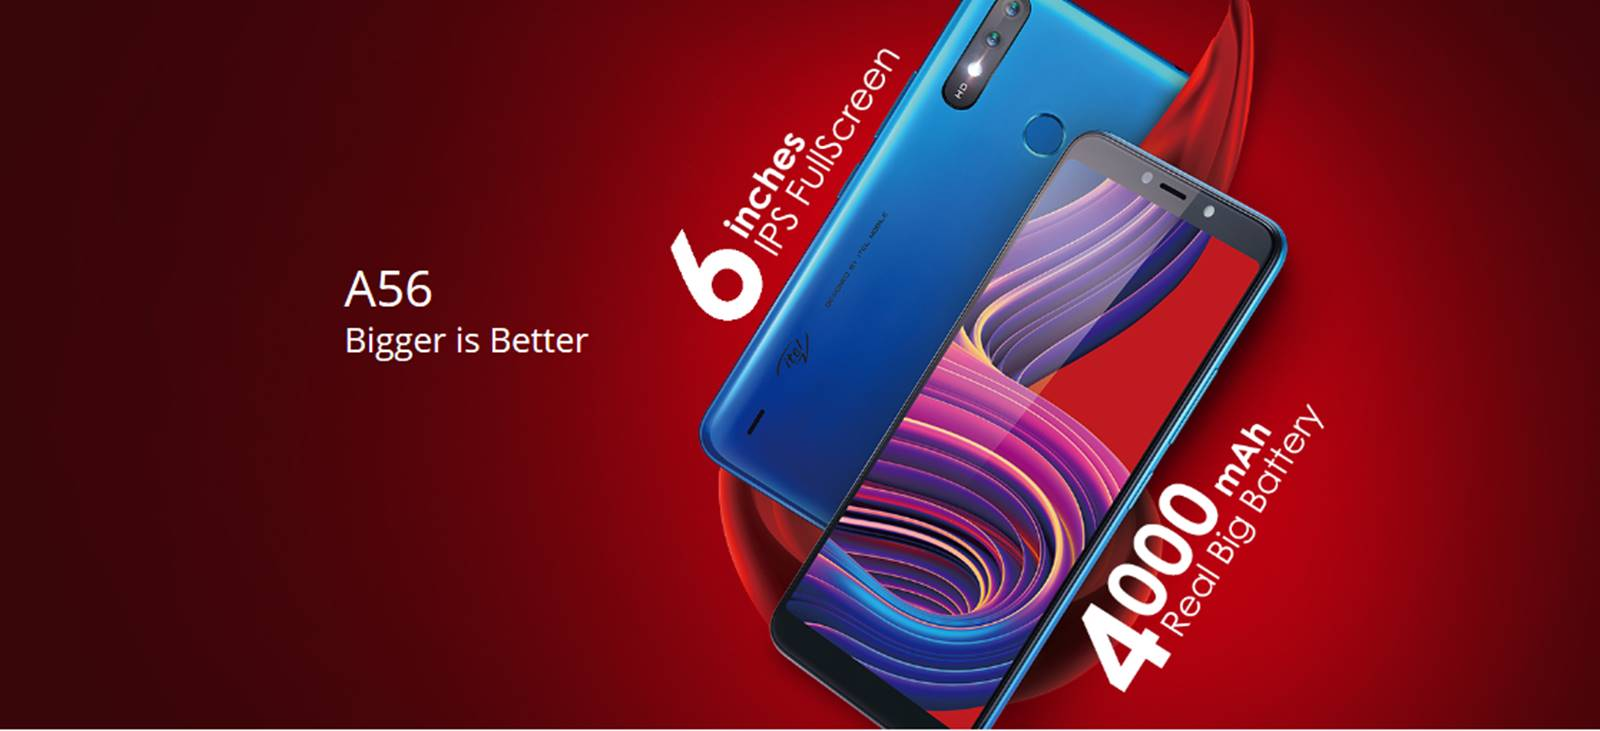 Itel A56 Full Device Specifications, Review, Price and Where to Buy